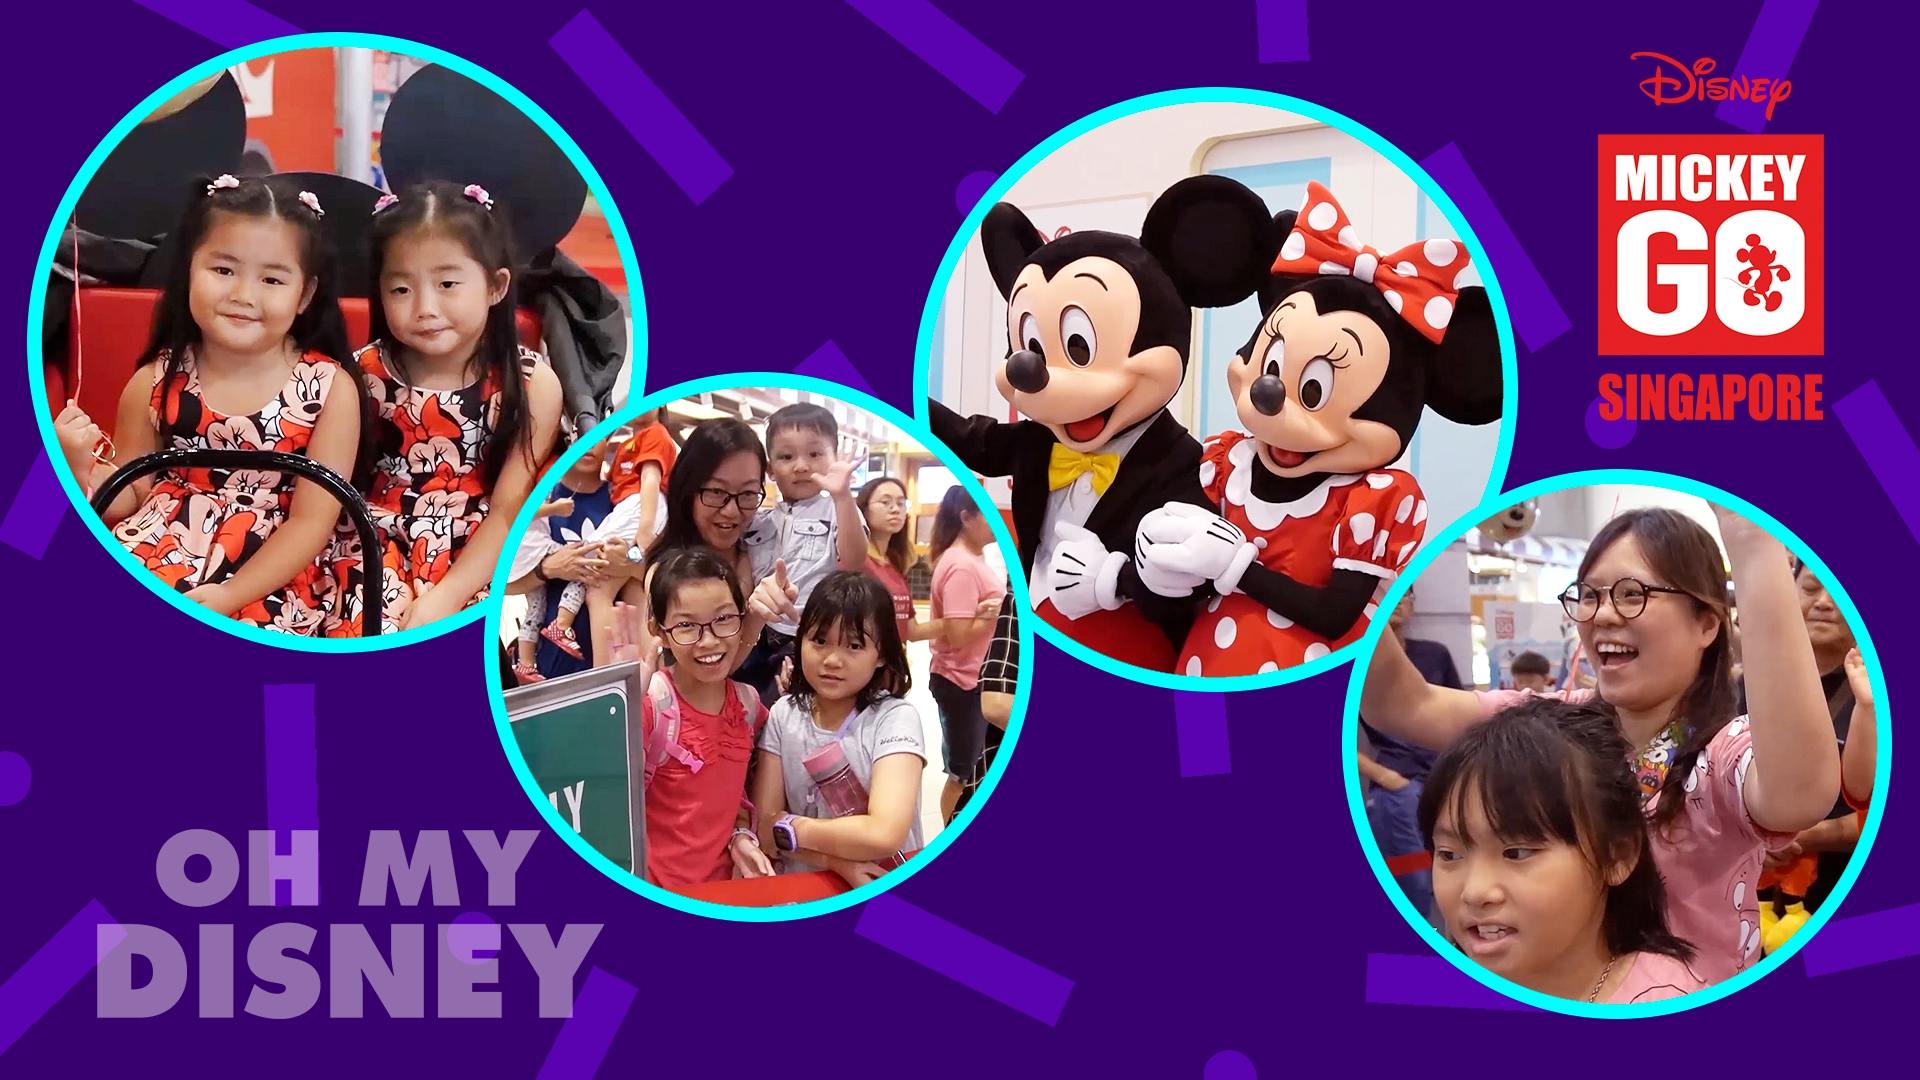 Disney Insider: Disney's Mickey Go Singapore Is Back In Town!